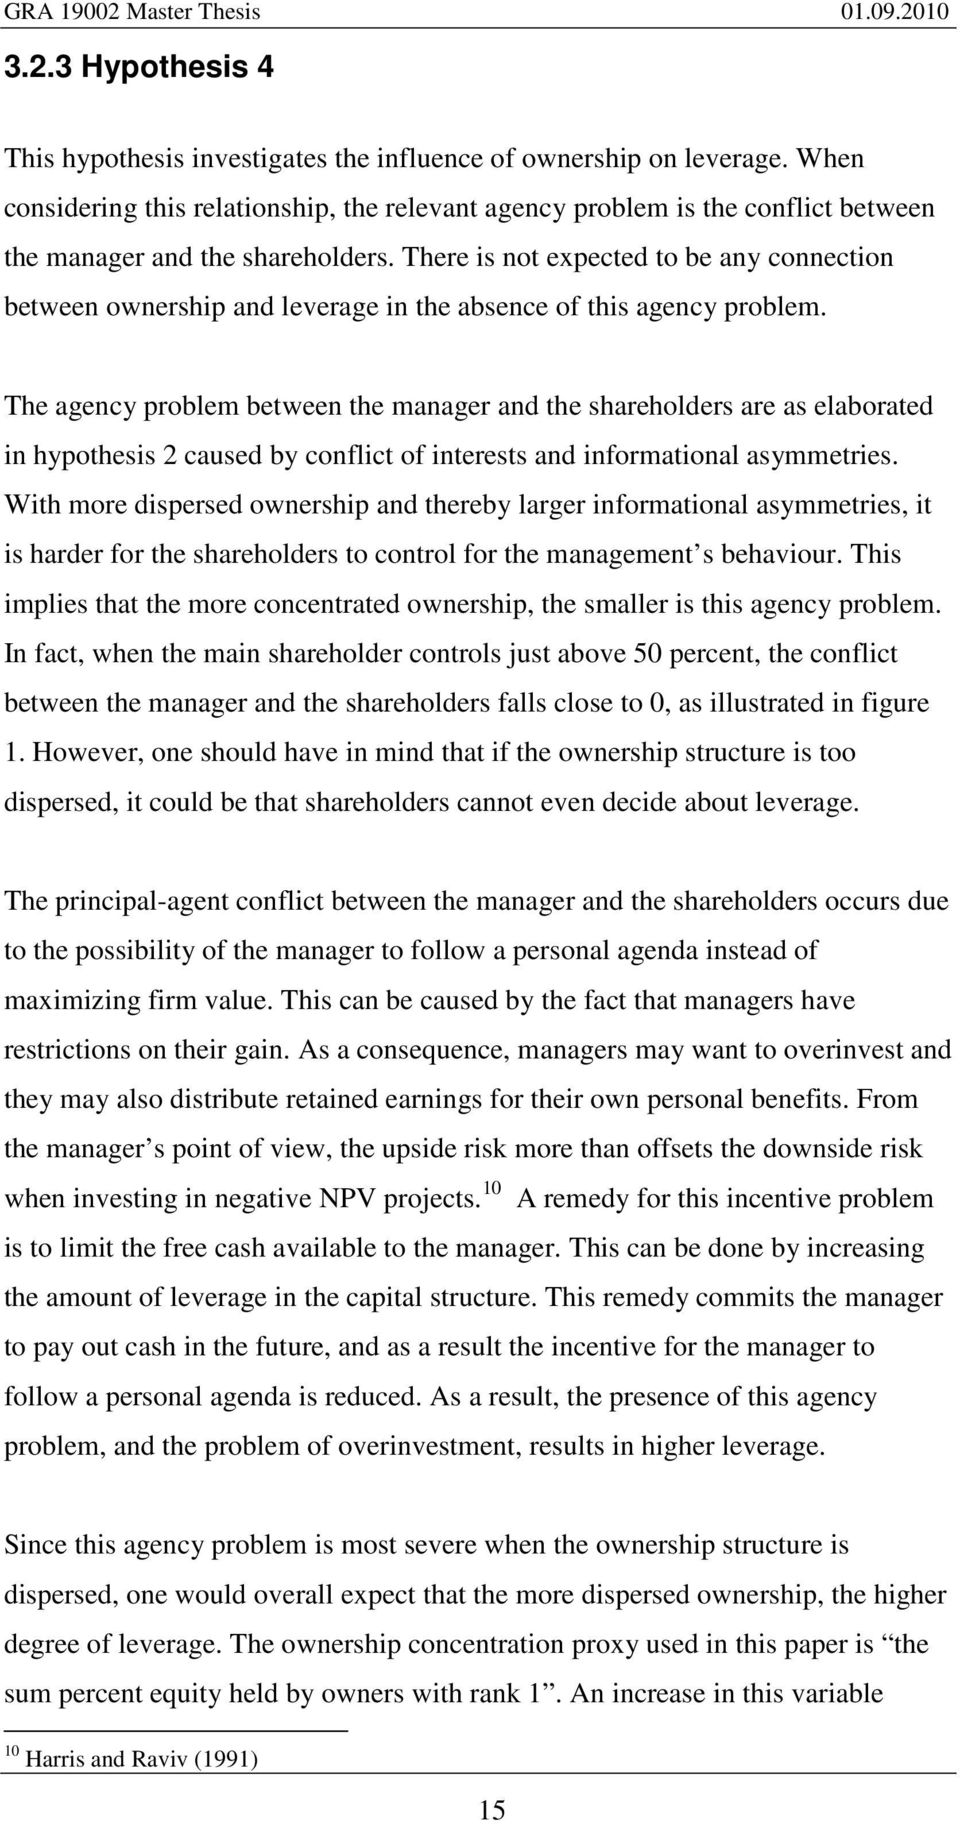 There is not expected to be any connection between ownership and leverage in the absence of this agency problem.